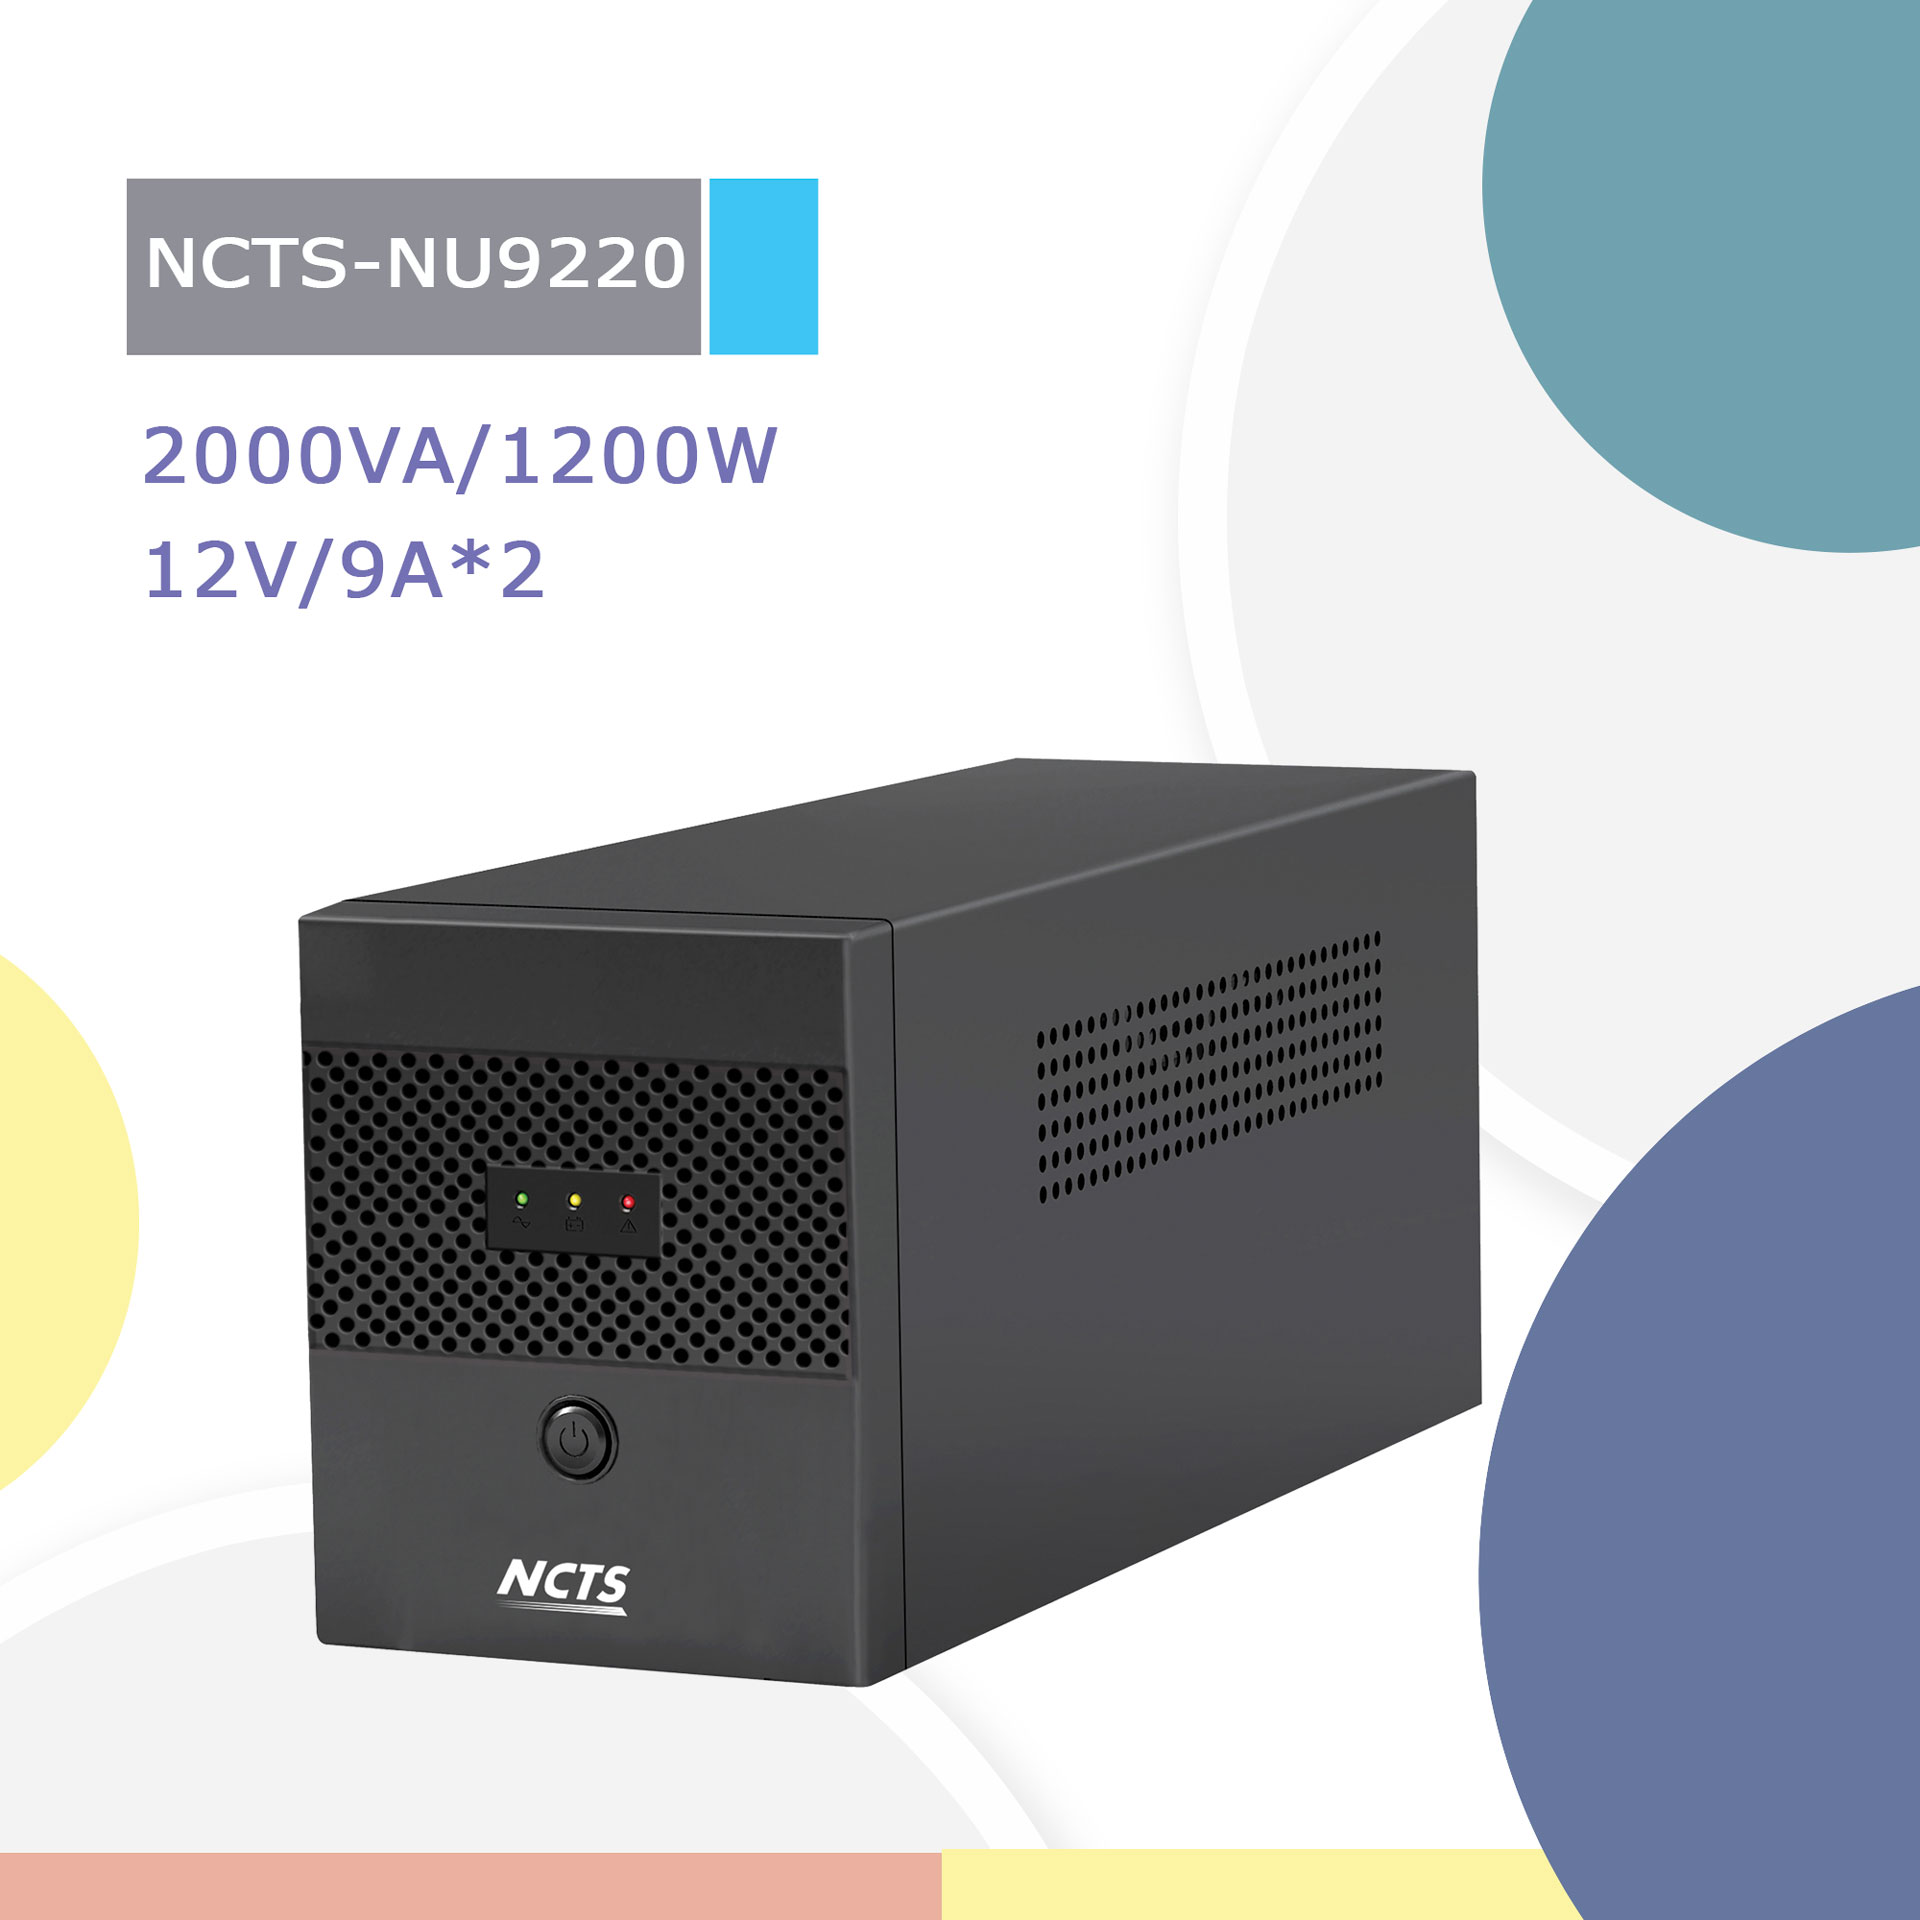 NCTS-NU9220